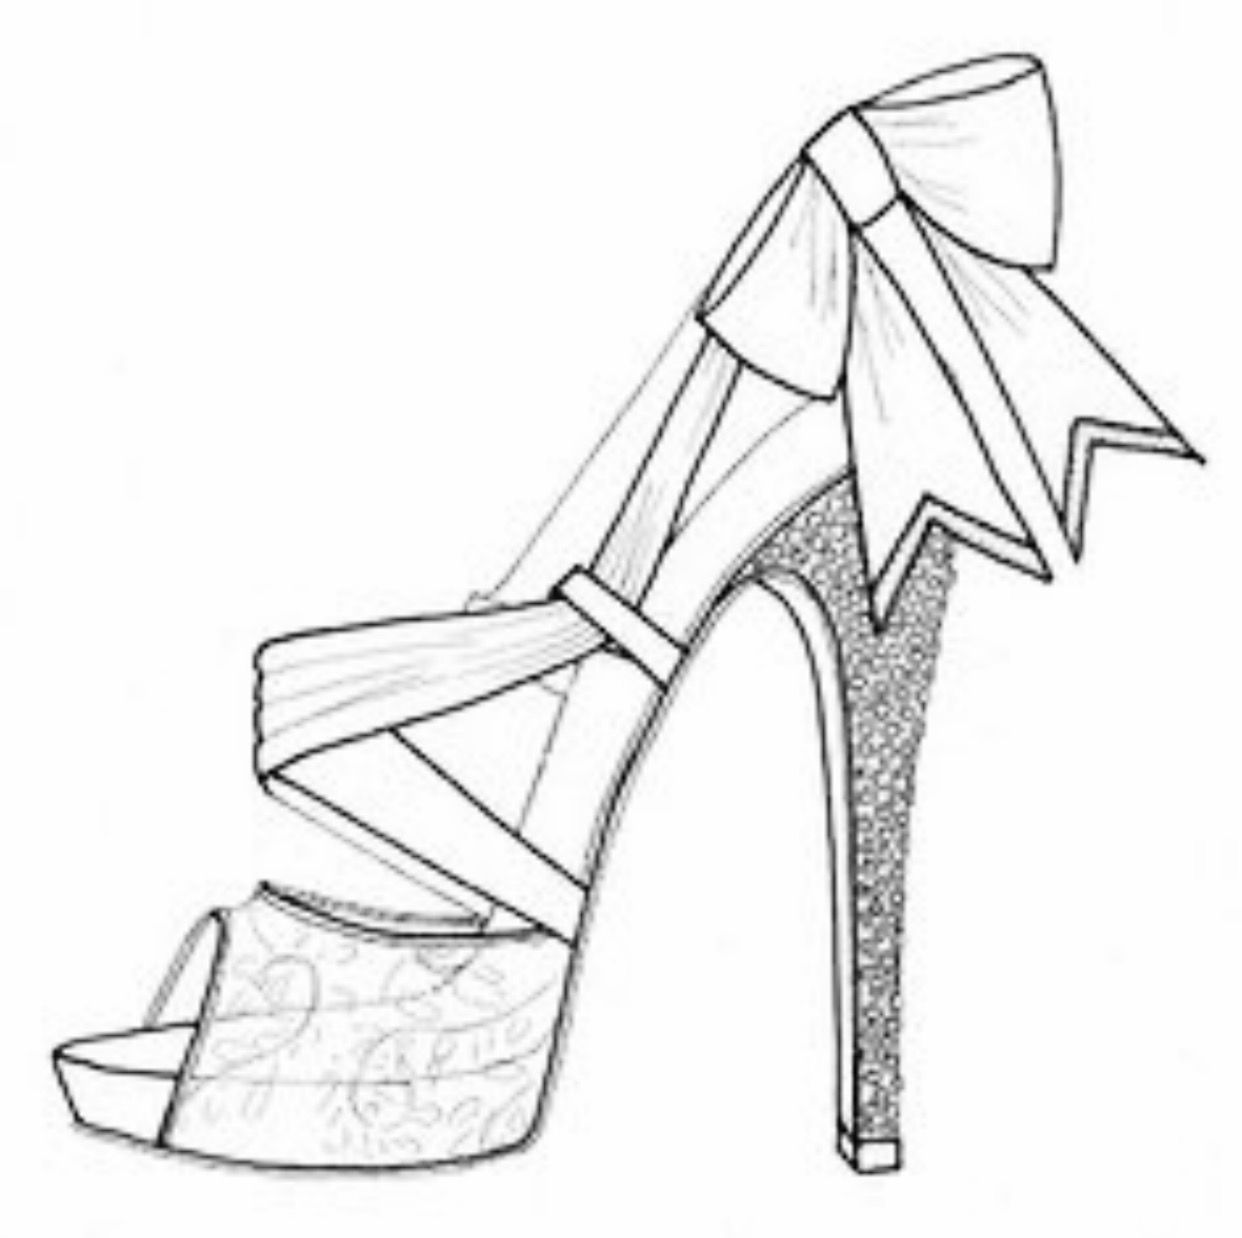 how to sketch heels sketches of high heel shoes at paintingvalleycom how to sketch heels